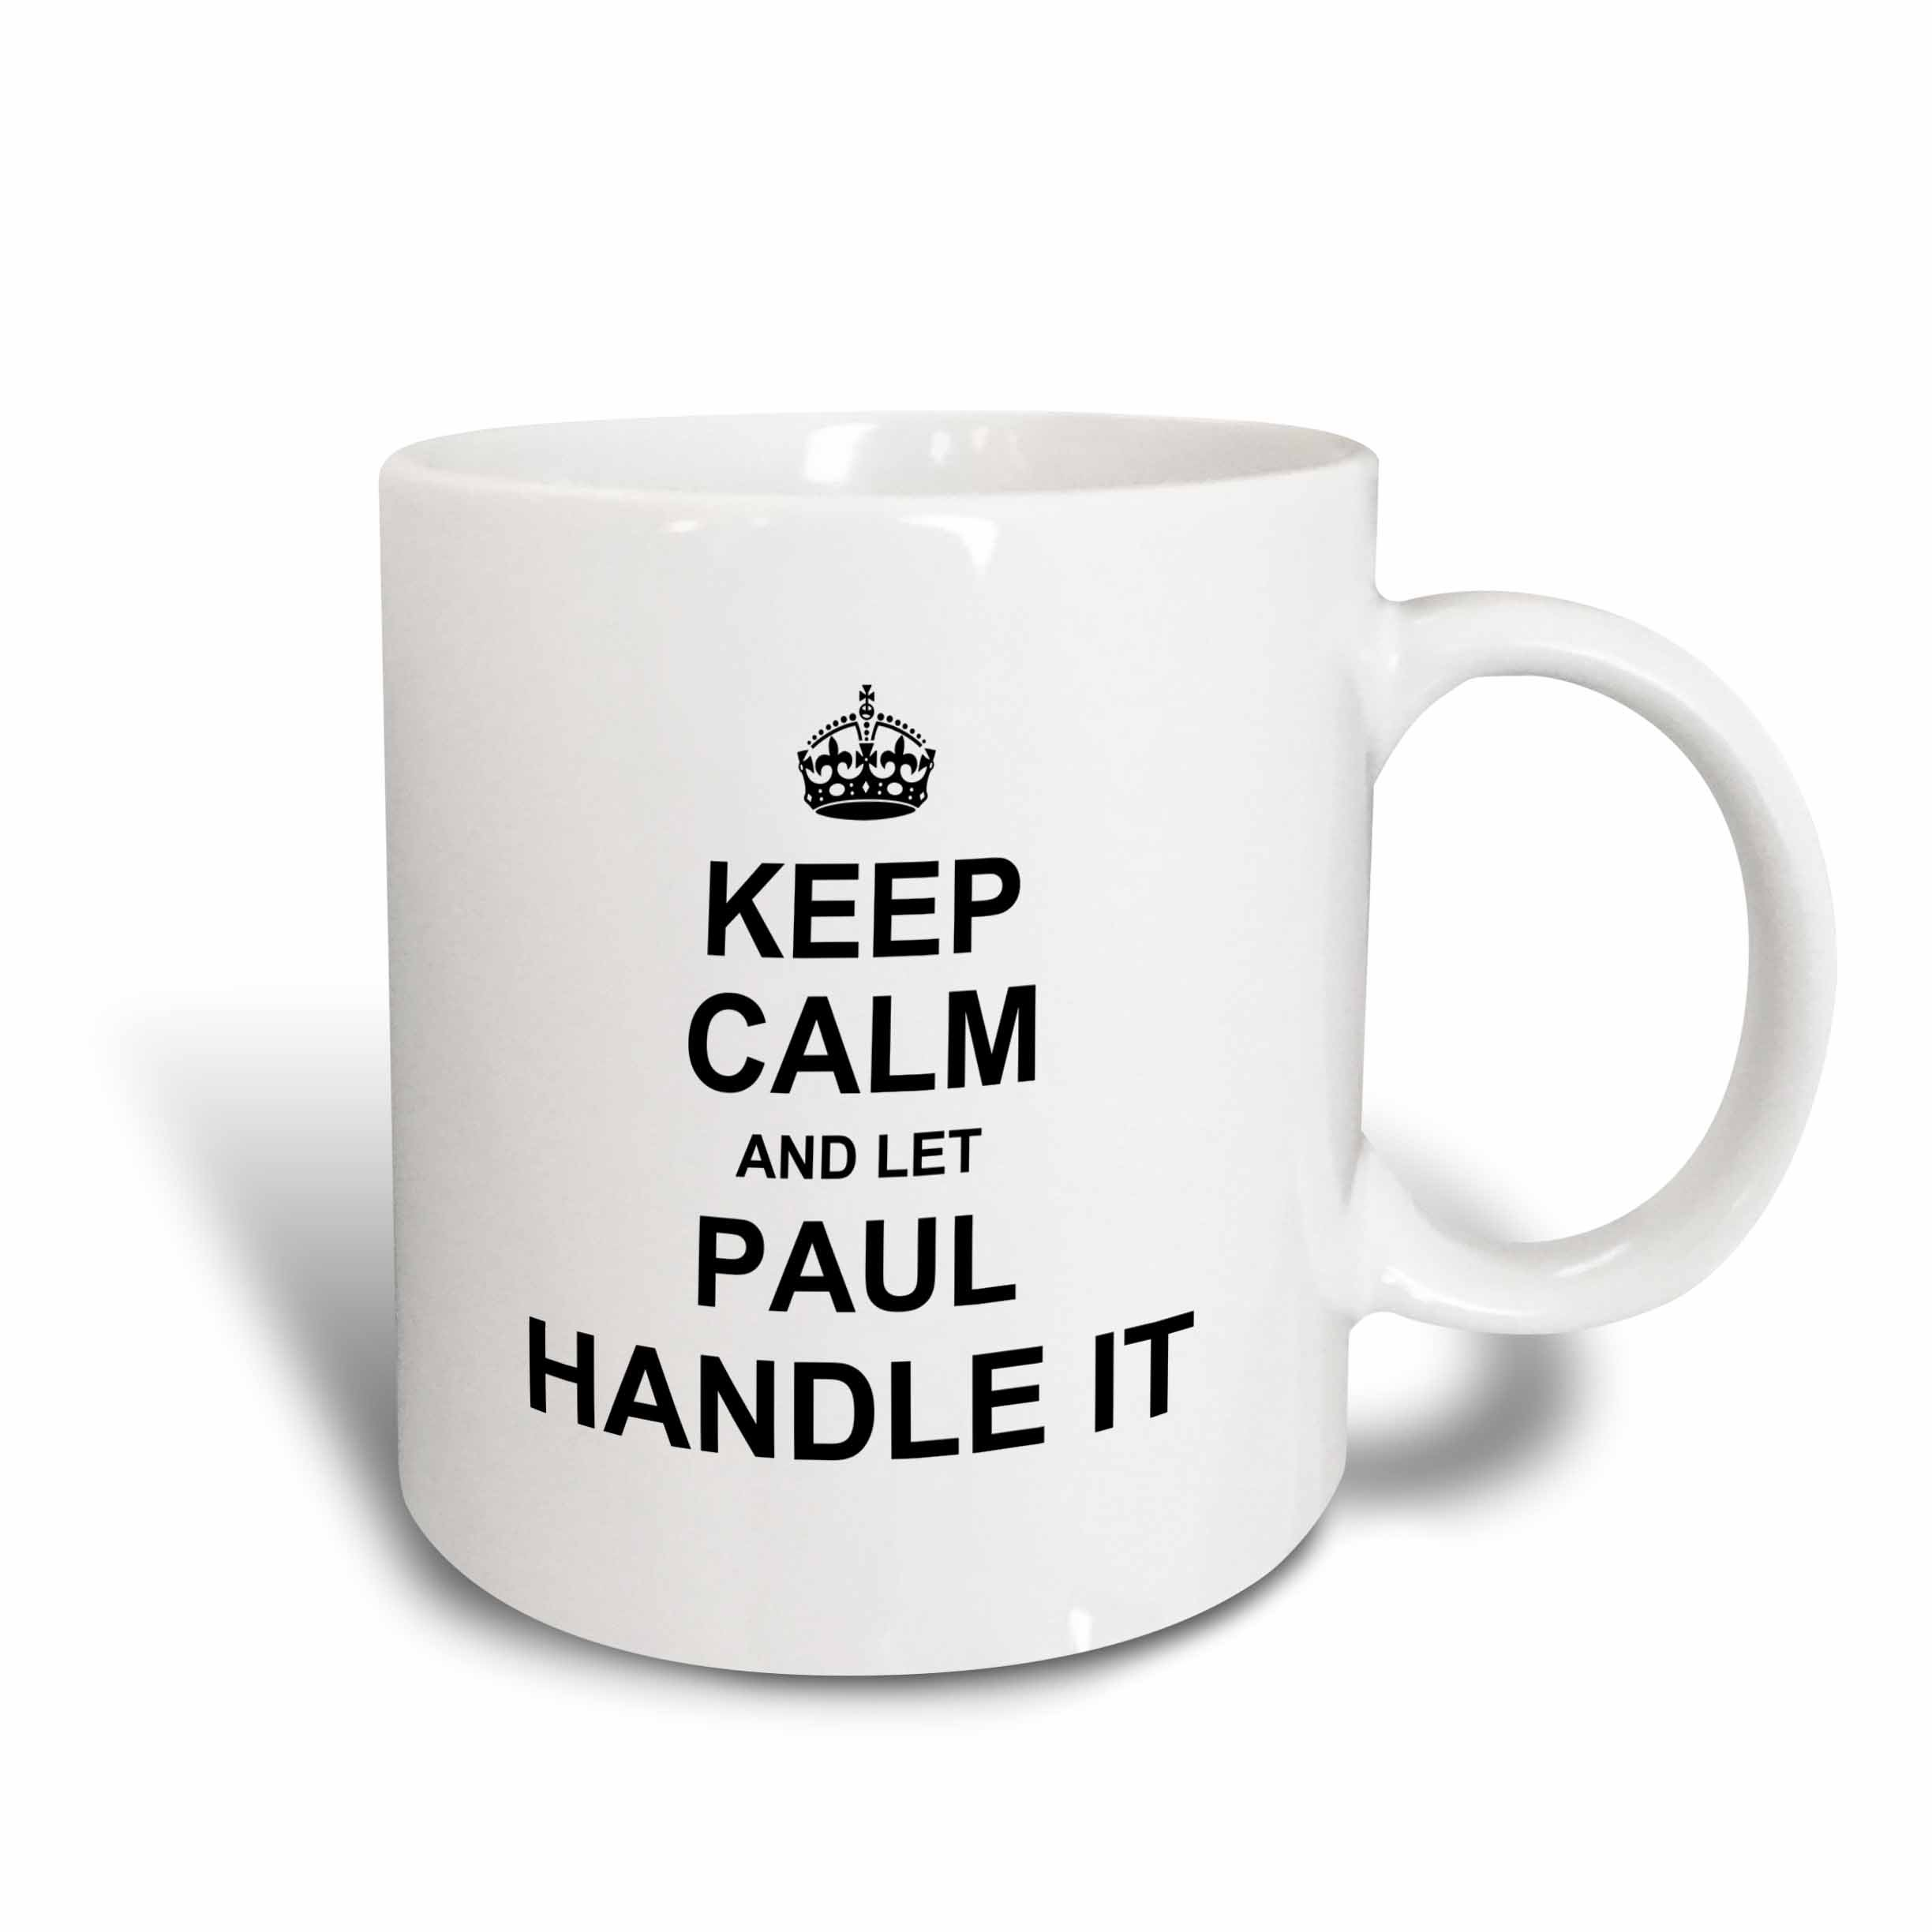 3dRose Keep Calm And Let Anna Handle It - Funny Personal Me Mug, 15 oz, White